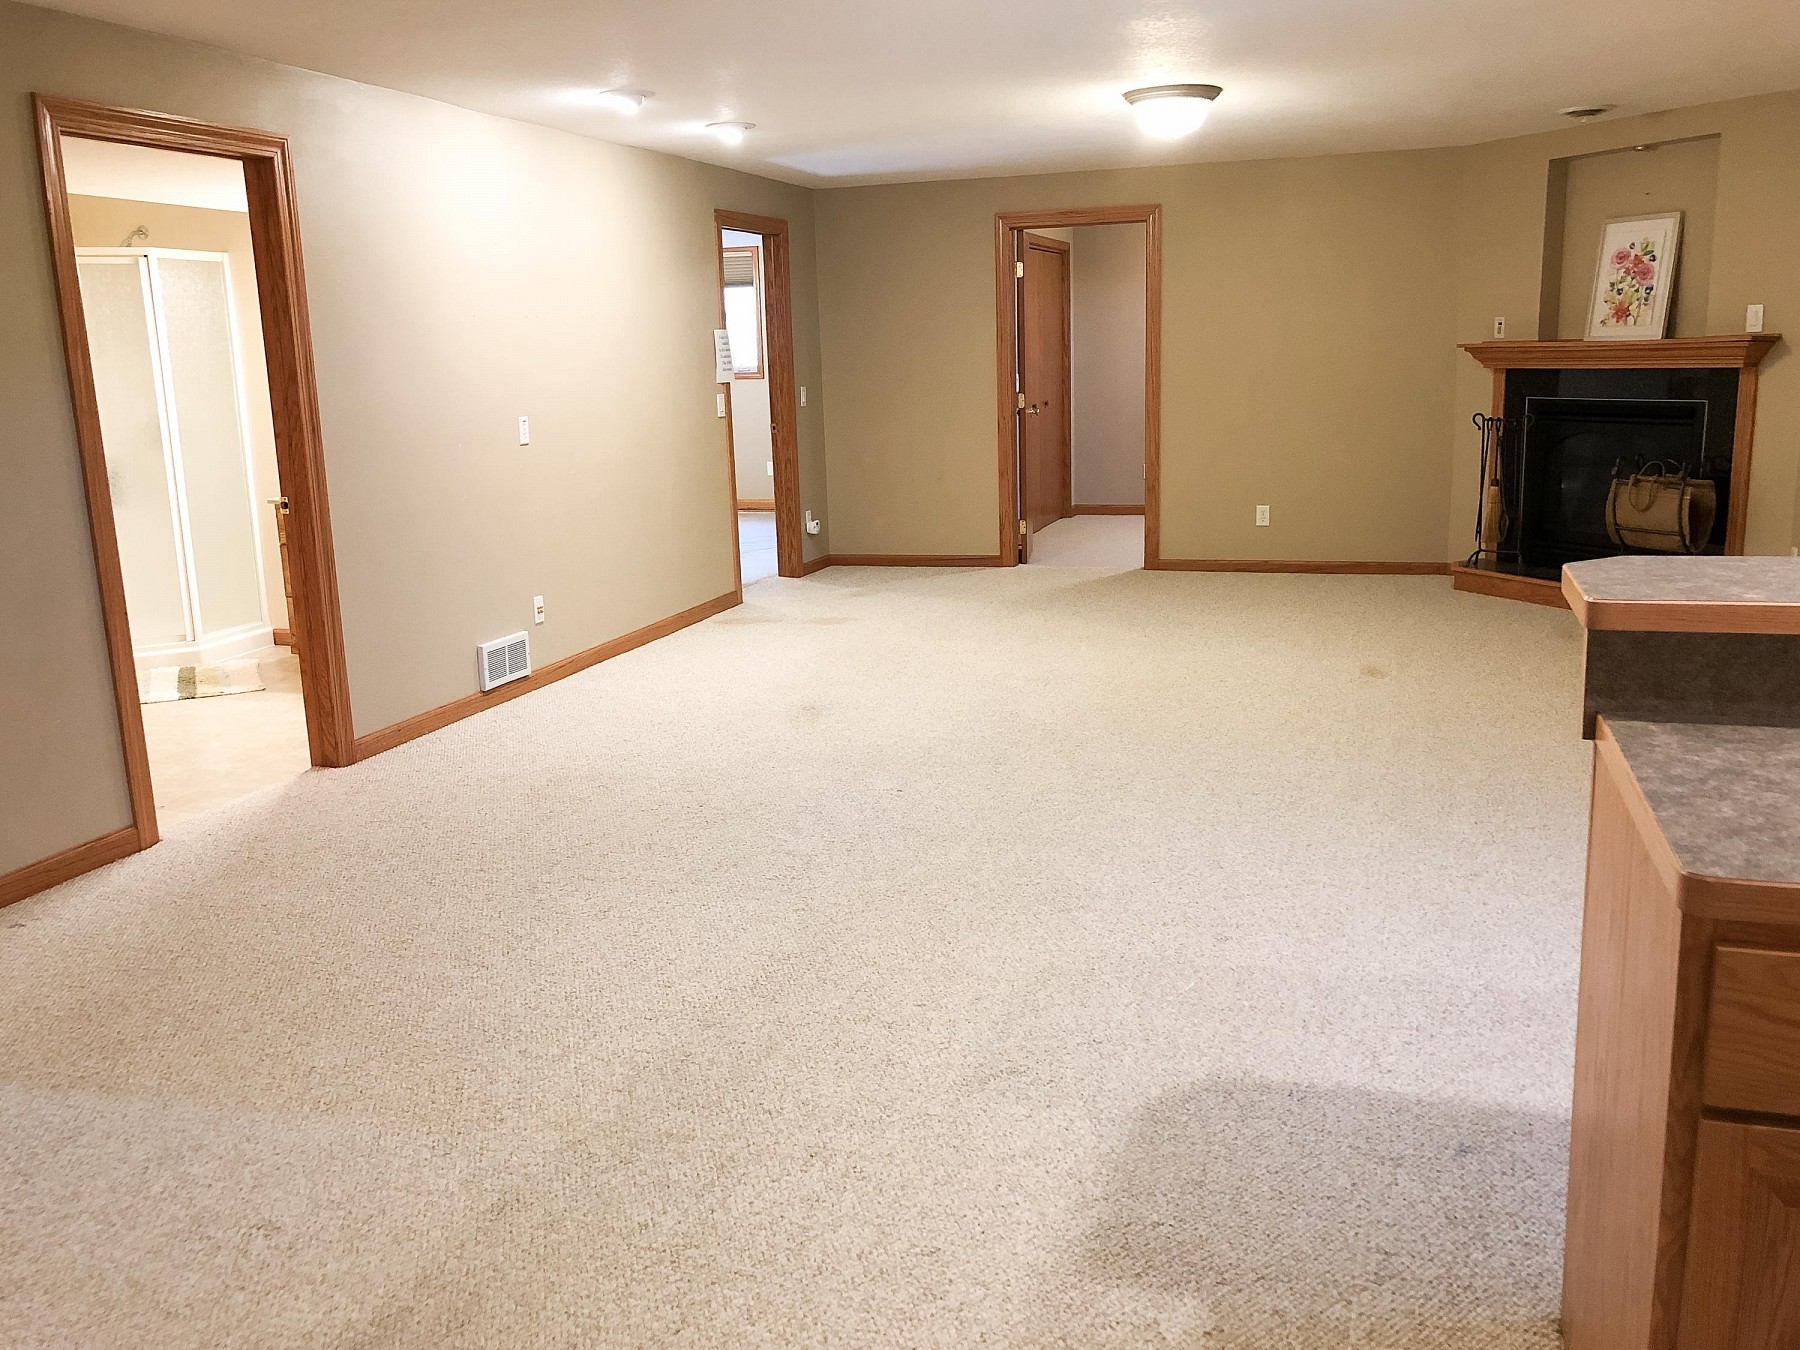 802 Candlewood Lane, Brookings, SD 57006